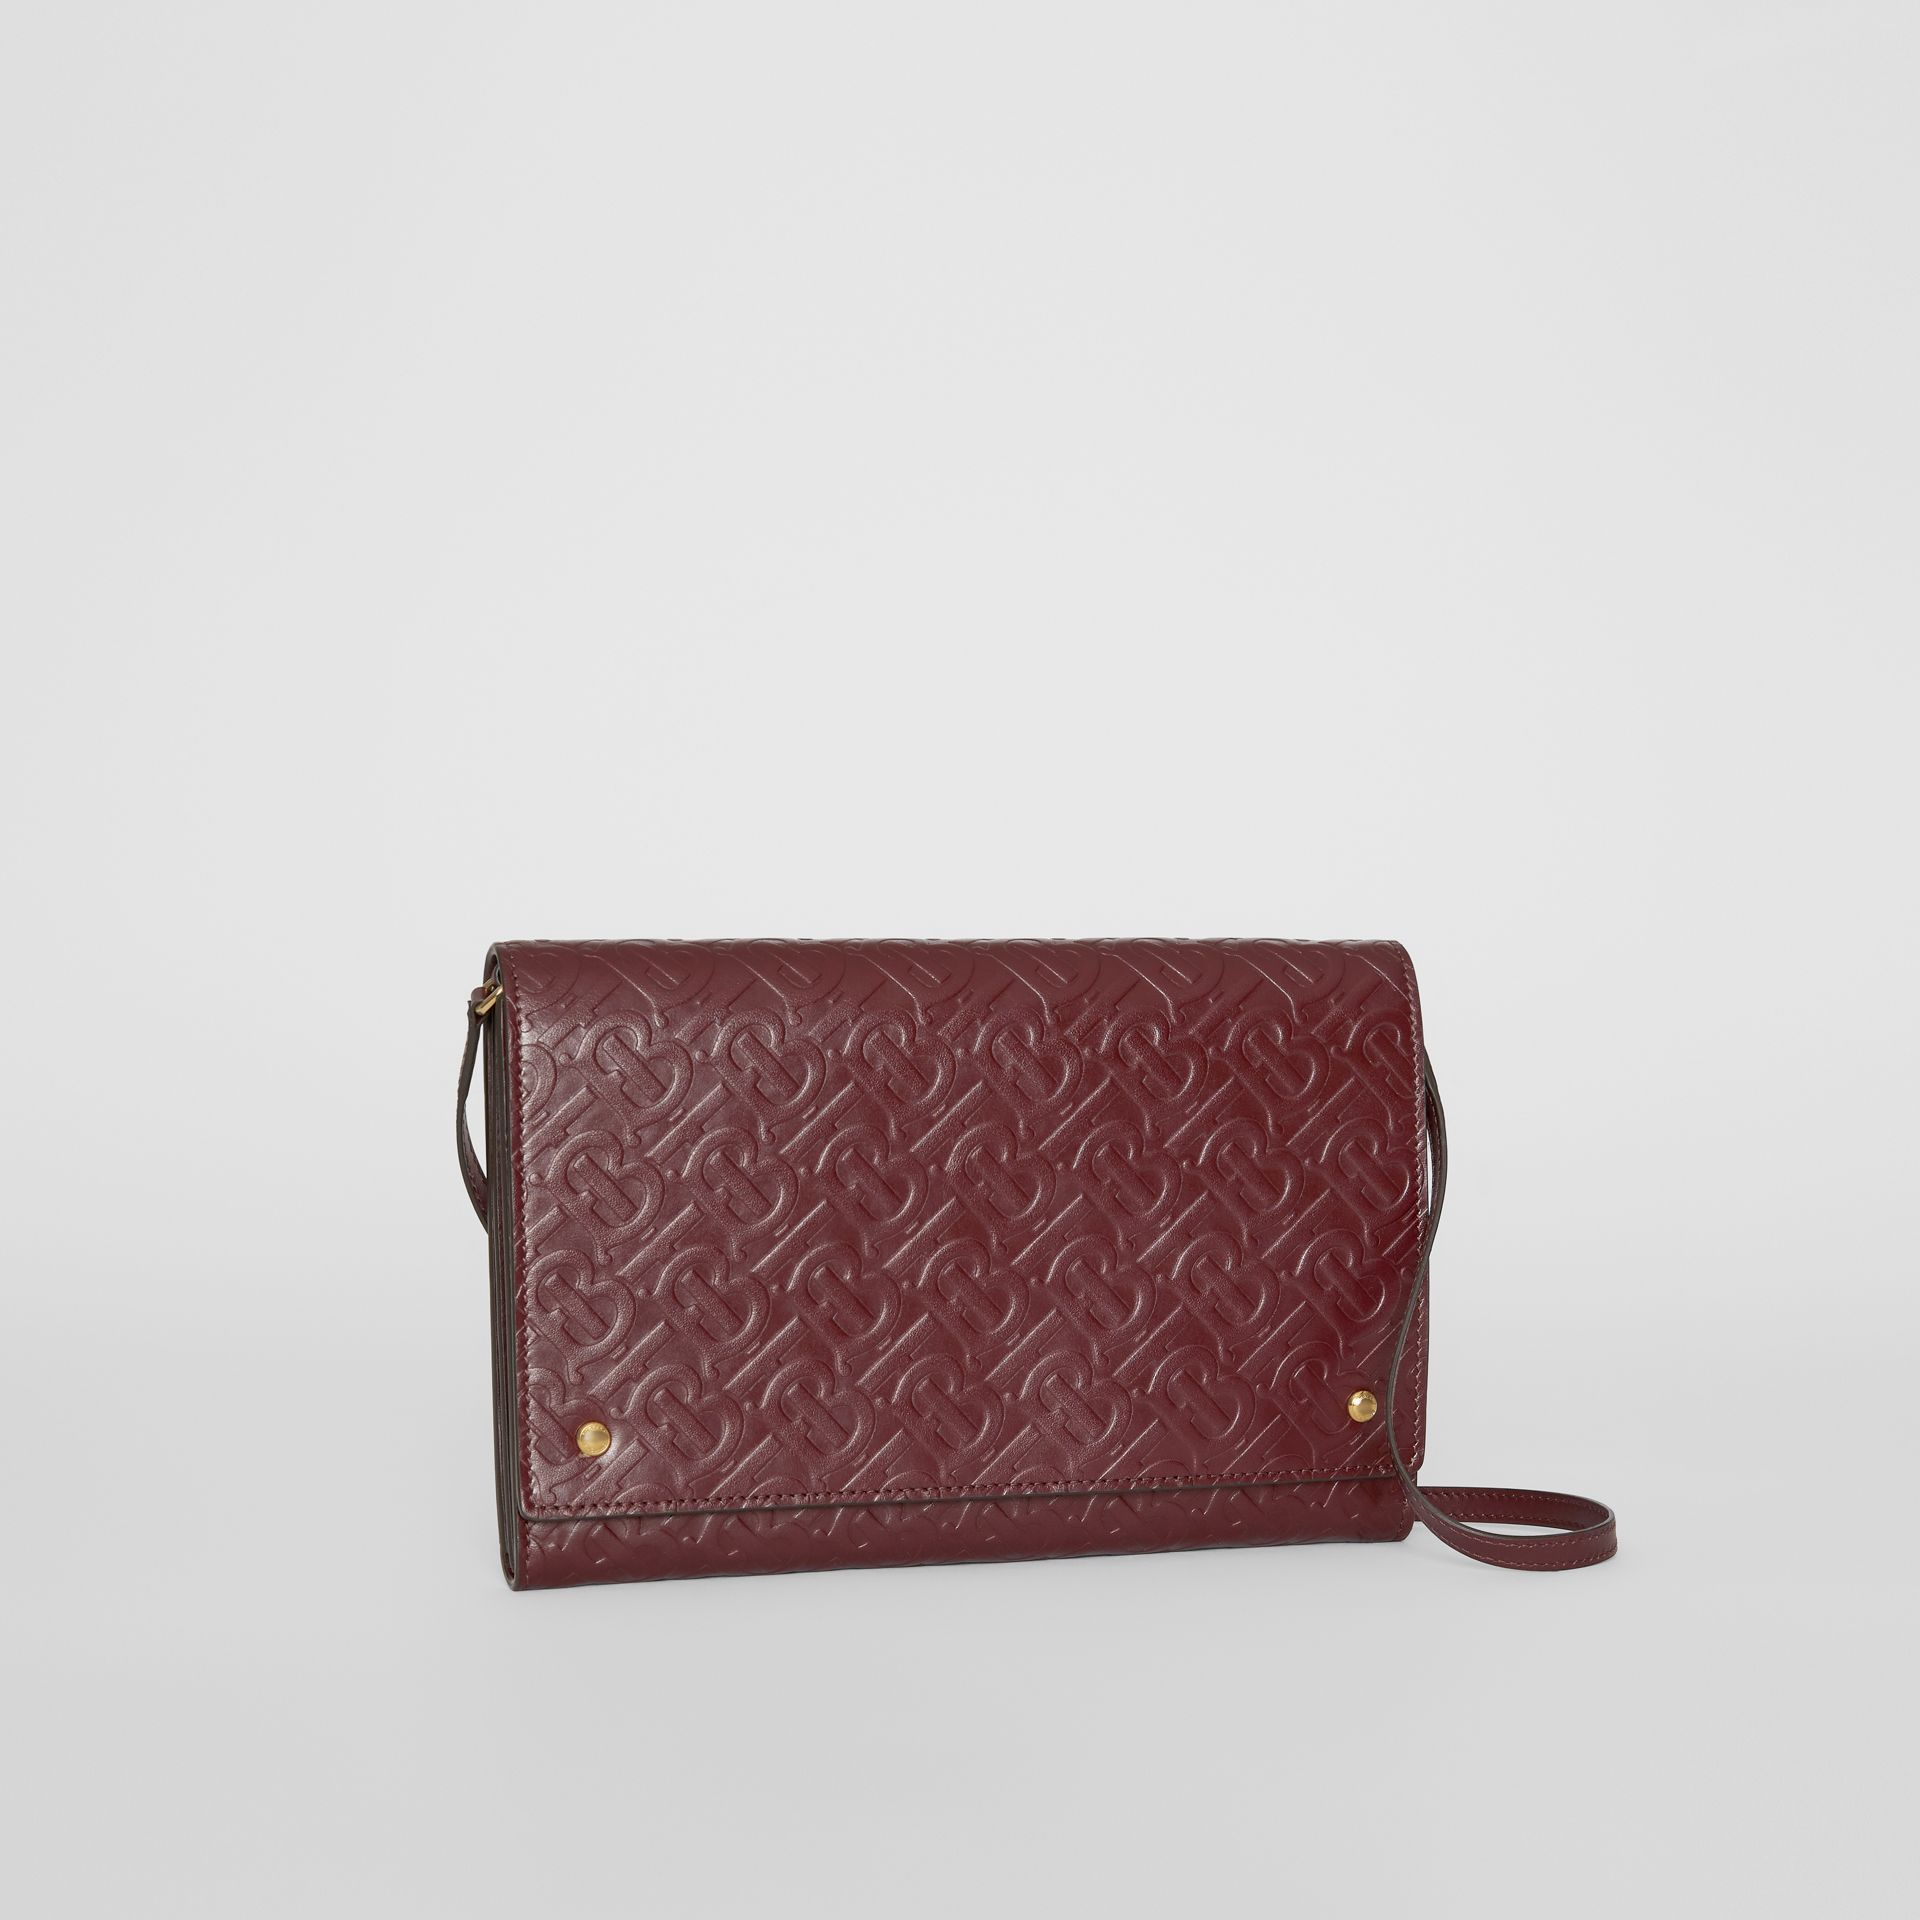 Sac en cuir Monogram avec sangle amovible (Oxblood) - Femme | Burberry Canada - photo de la galerie 4